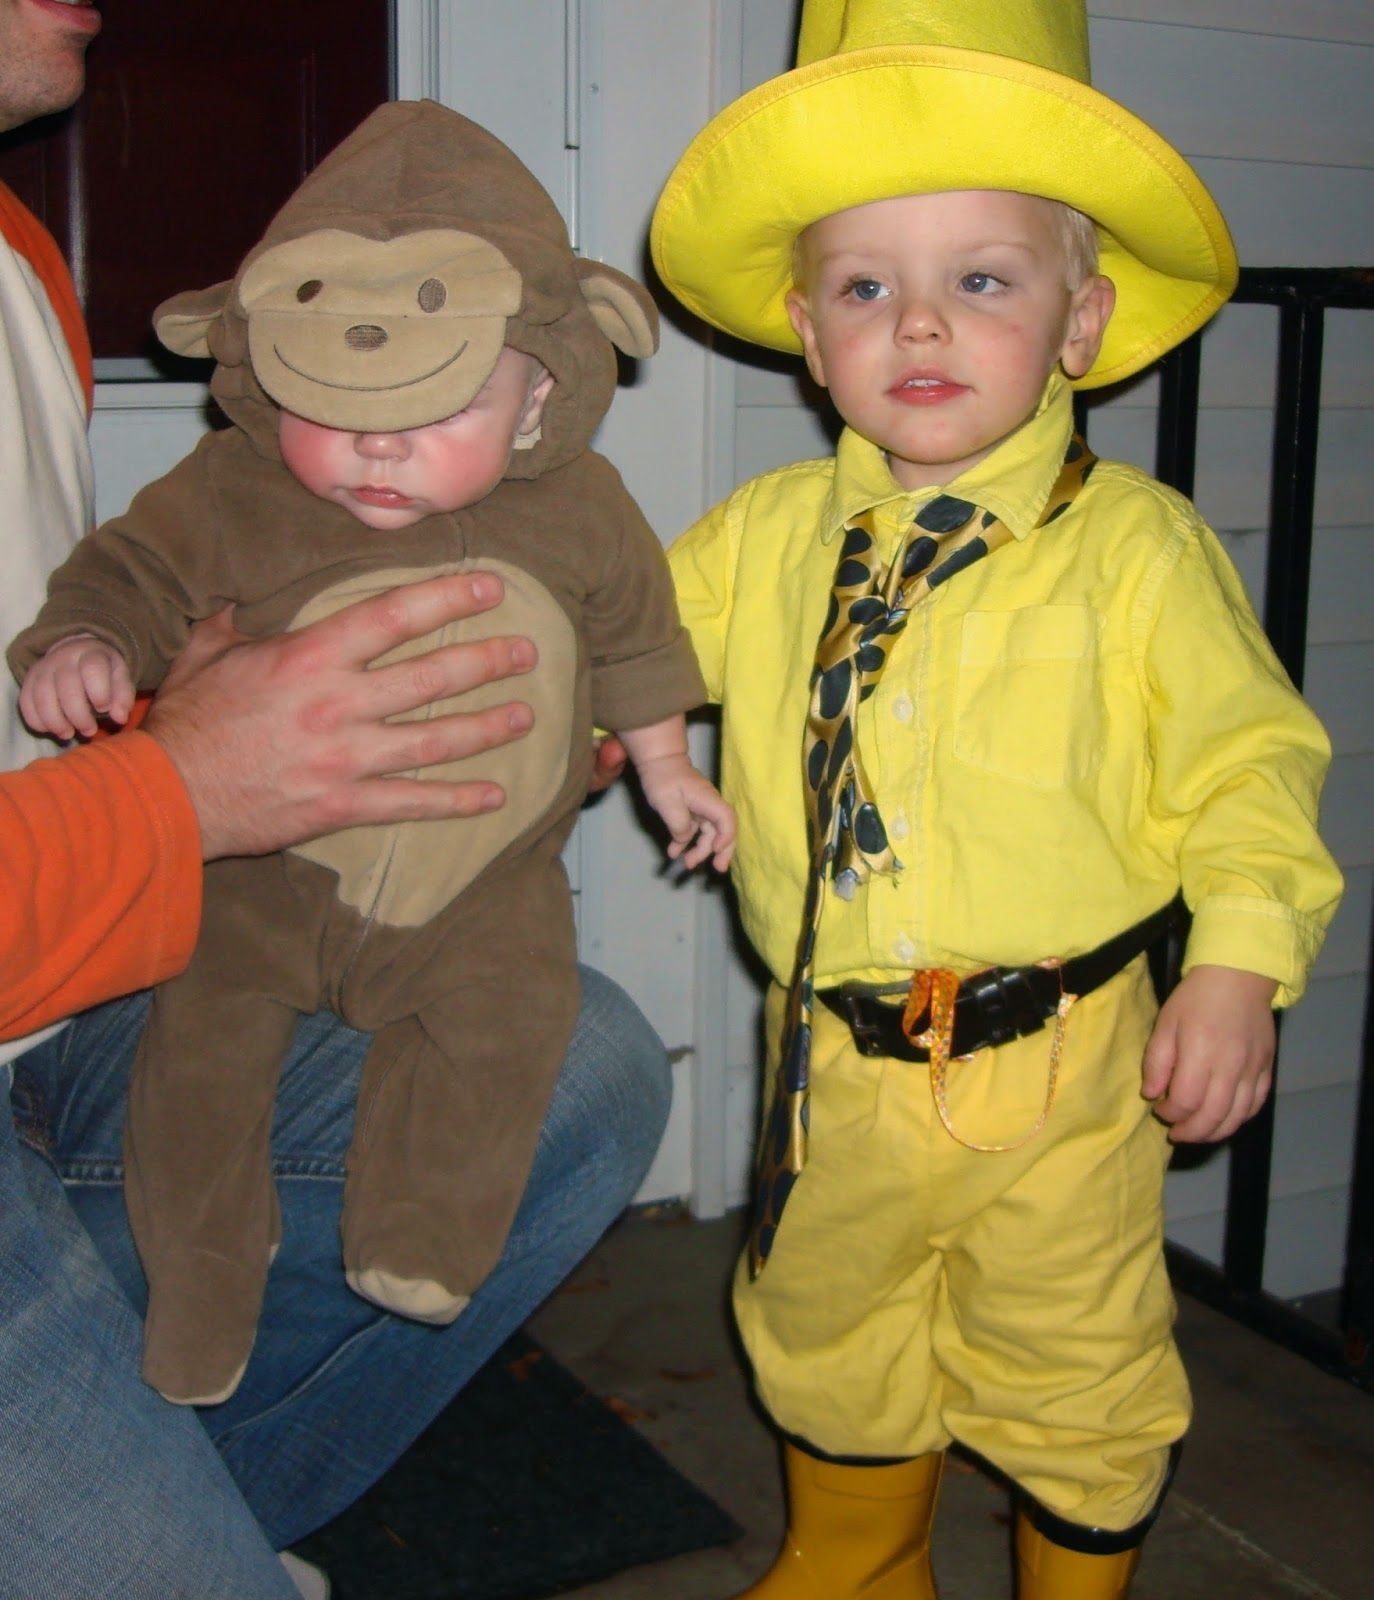 The Best of Halloween Costumes 2014 18 Awesome Halloween Costume Ideas for Little Boys  sc 1 st  Pinterest & The Best of Halloween Costumes 2014: 18 Awesome Halloween Costume ...